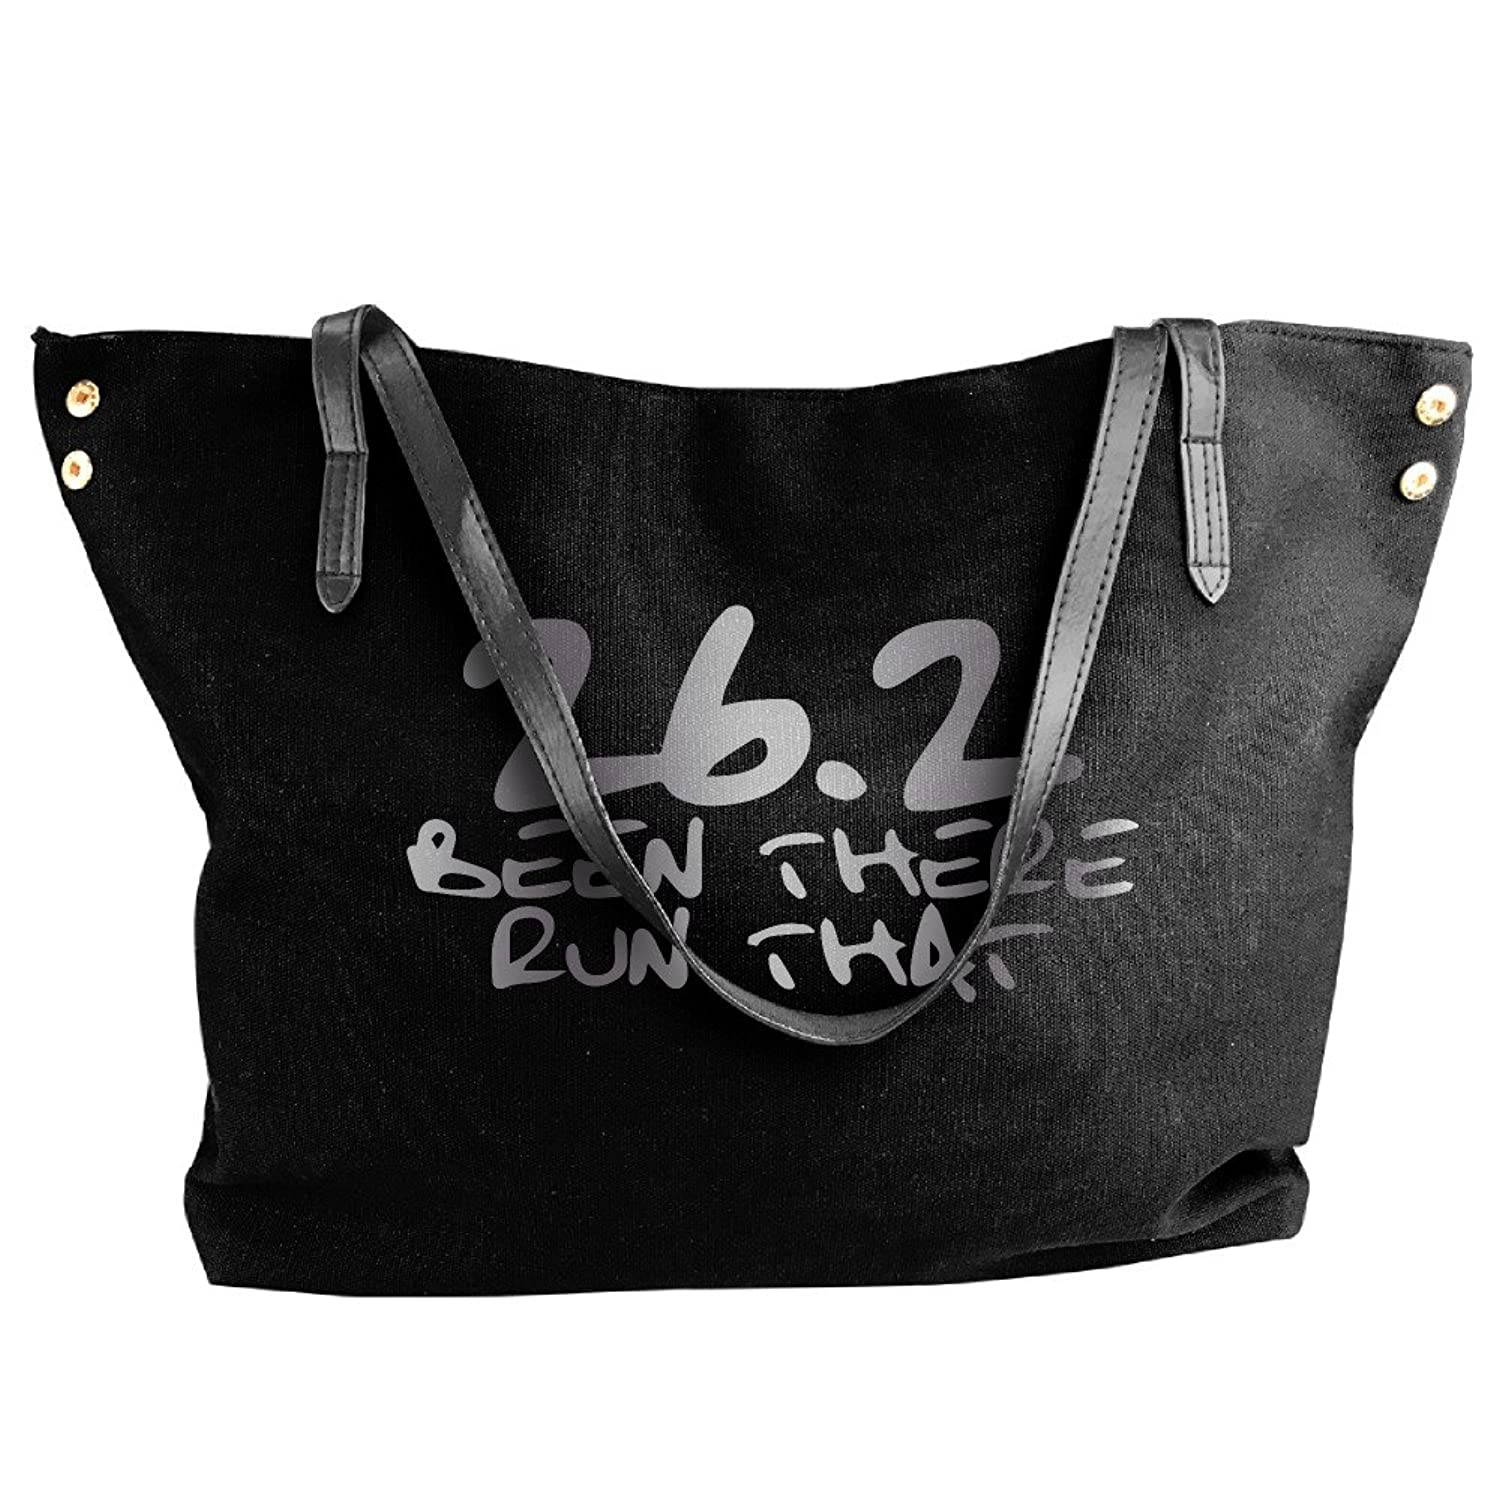 26.2 Been There Run That Platinum Style Women Shoulder Bags